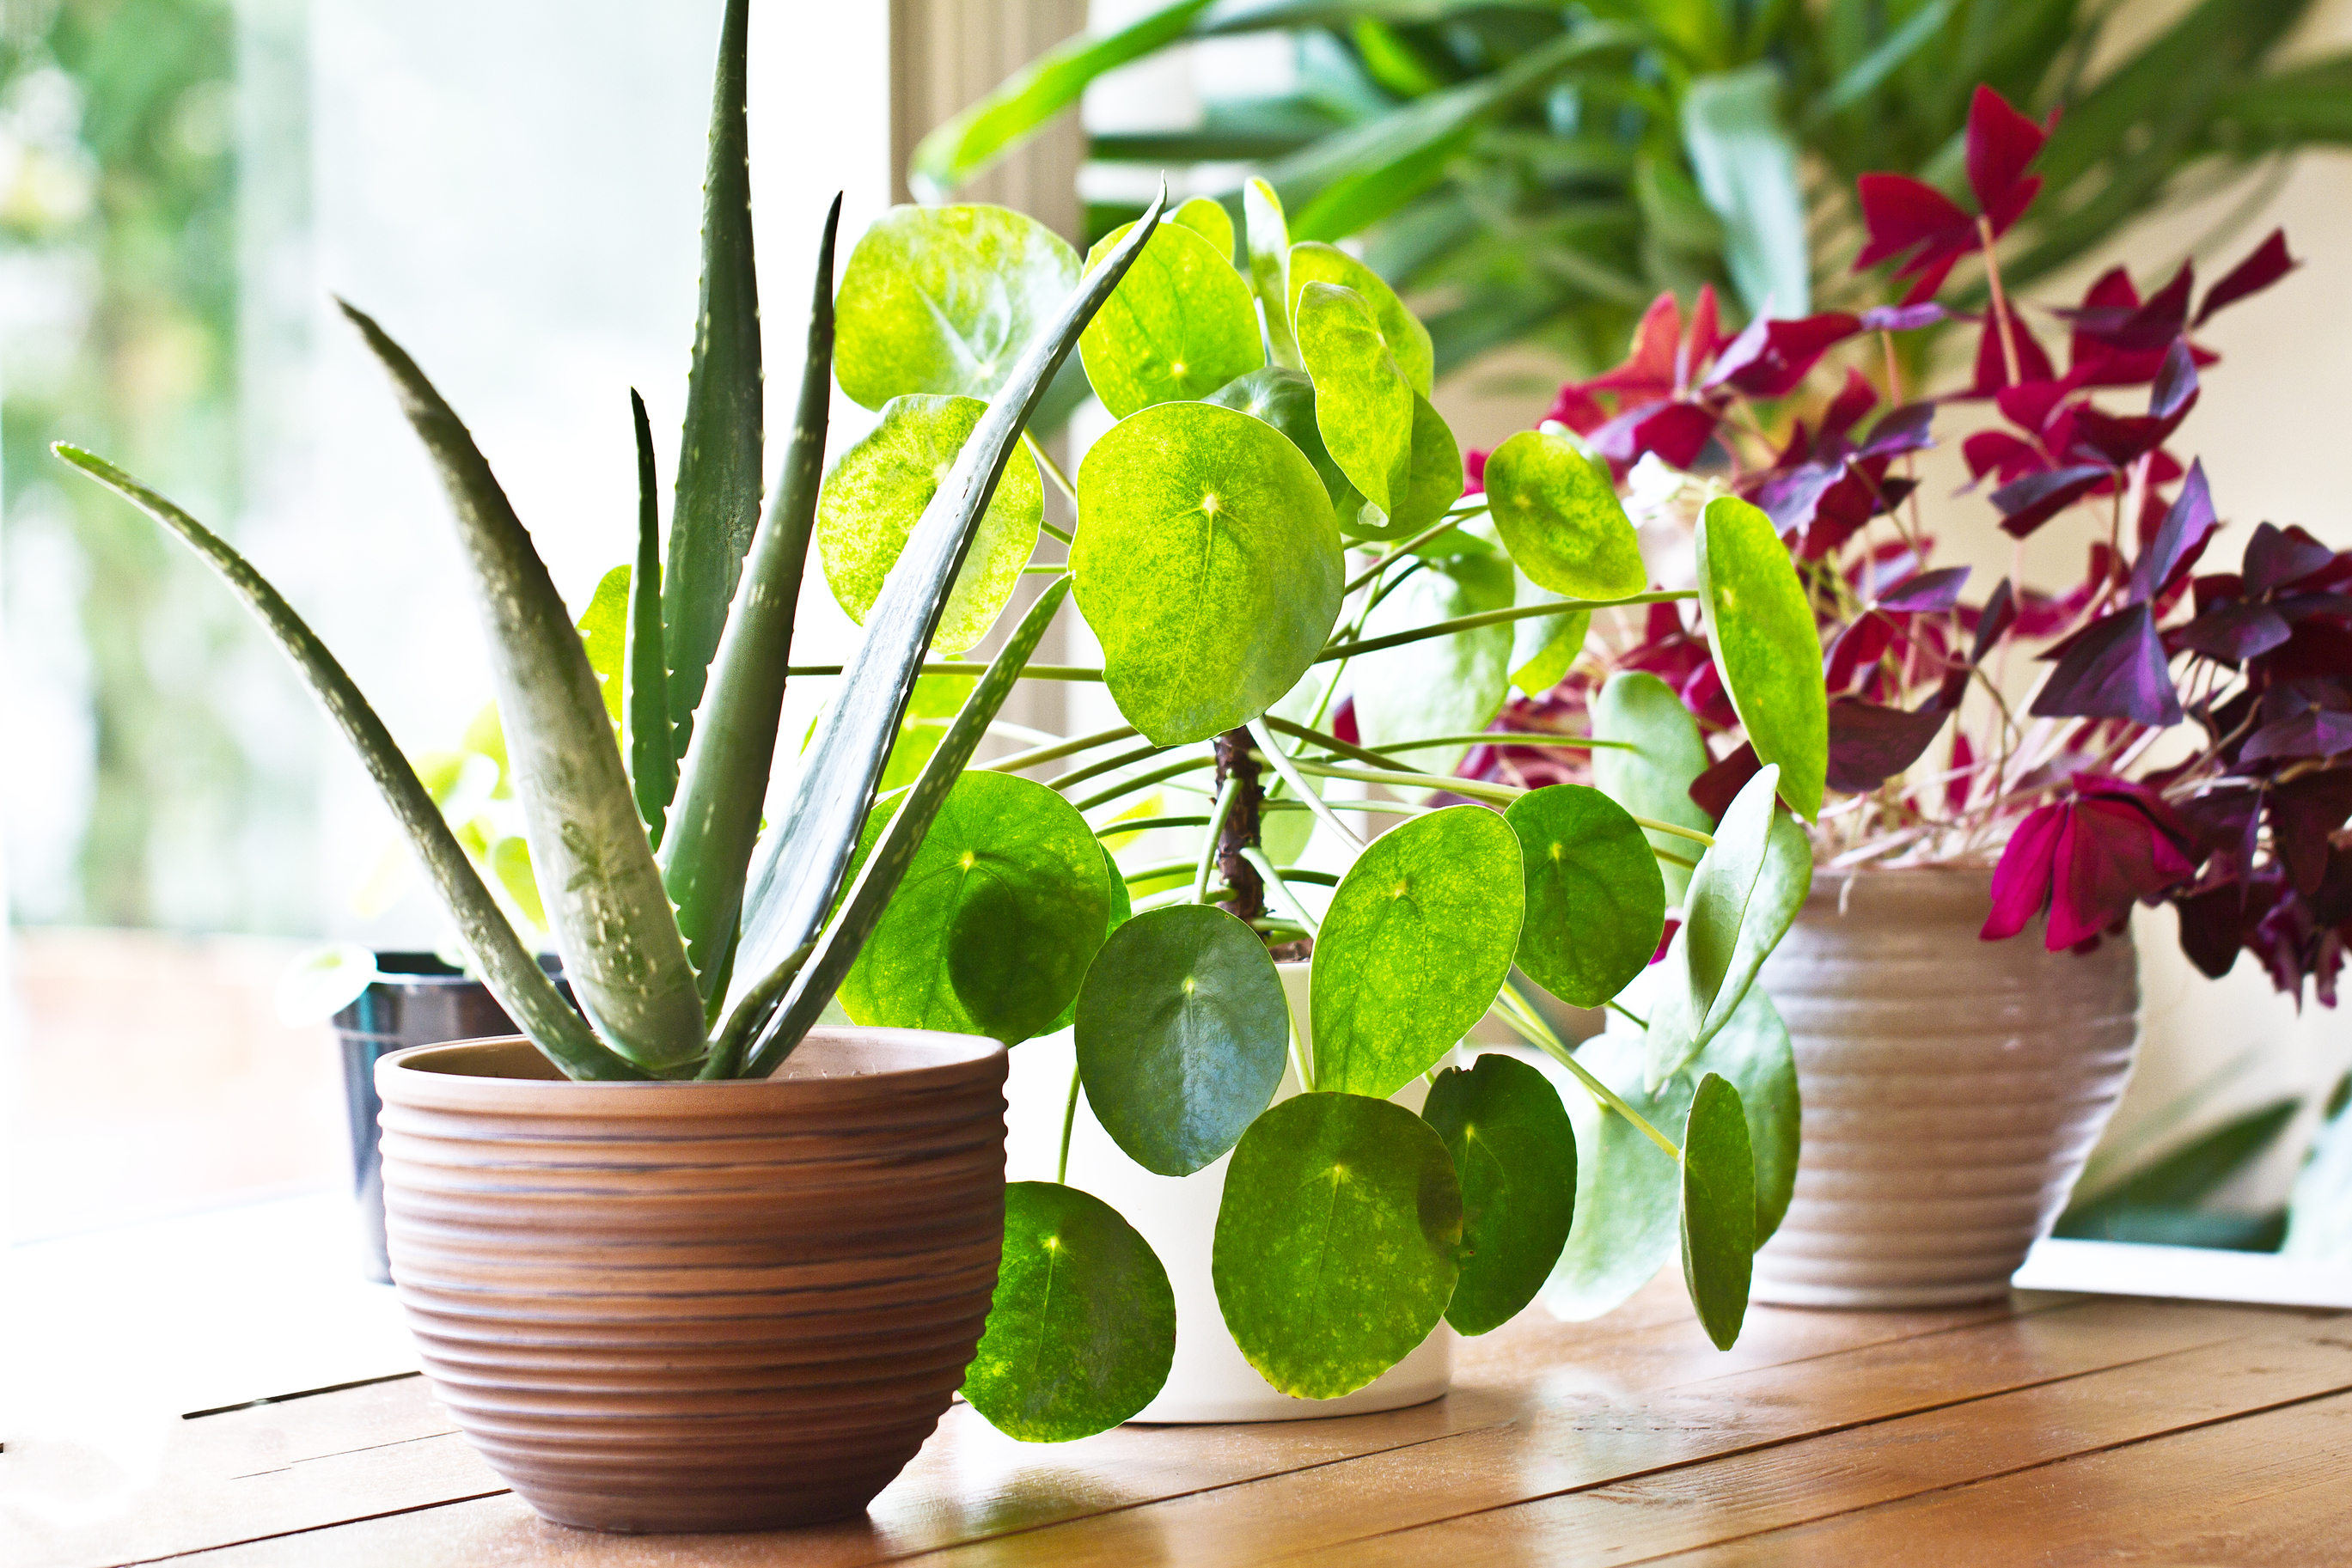 Millennials Fall in Love With Houseplants | News India Times